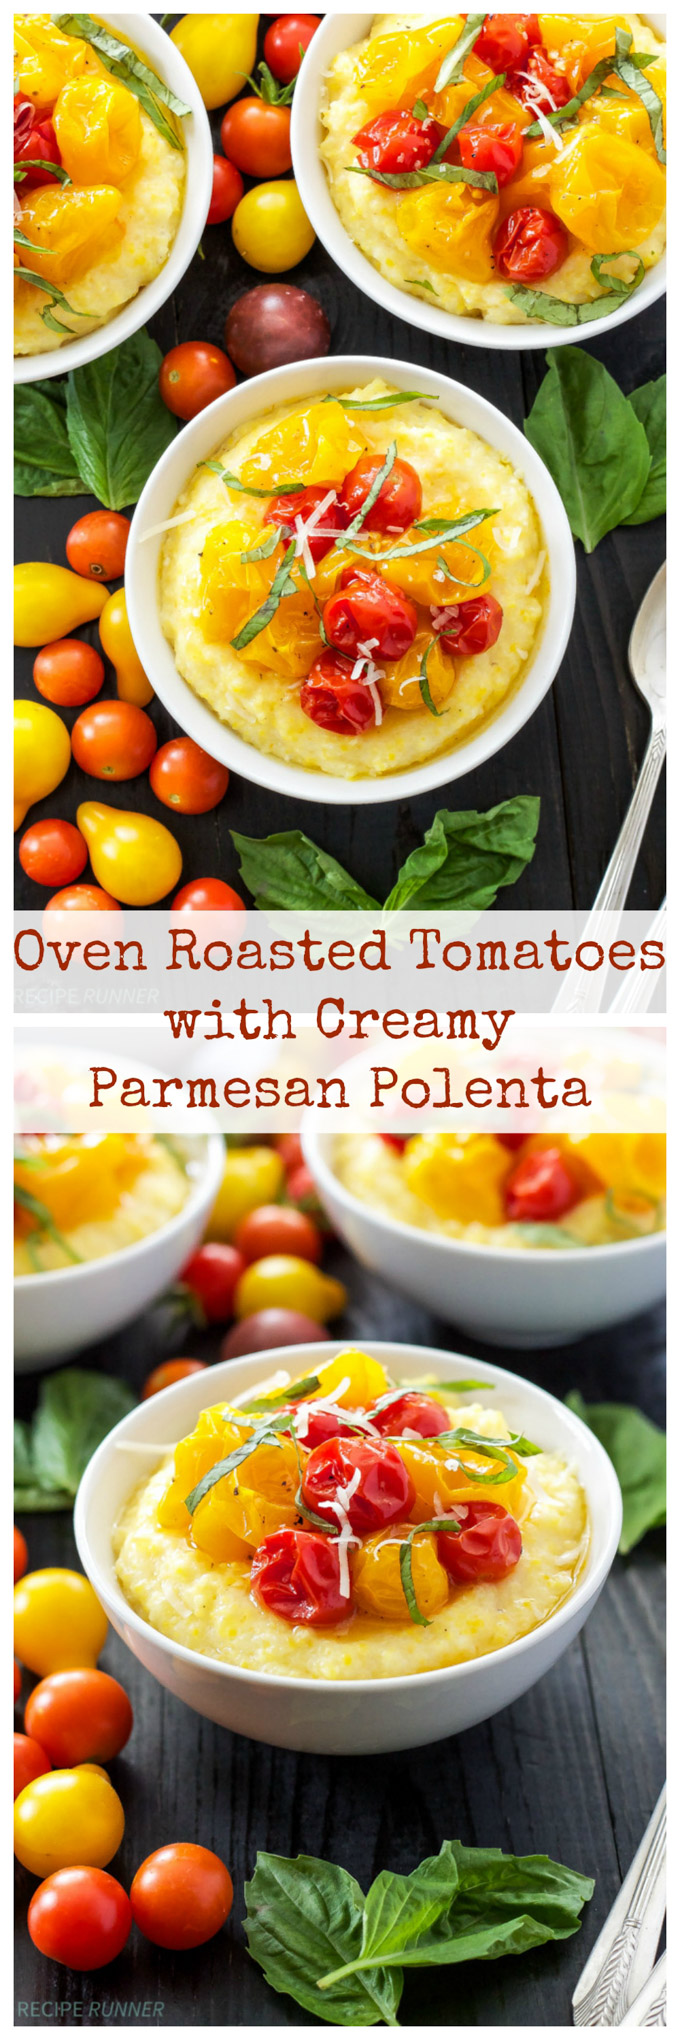 Oven Roasted Tomatoes with Creamy Parmesan Polenta | Oven roasted tomatoes, creamy polenta, and lots of parmesan cheese are the perfect bowl of comfort food!